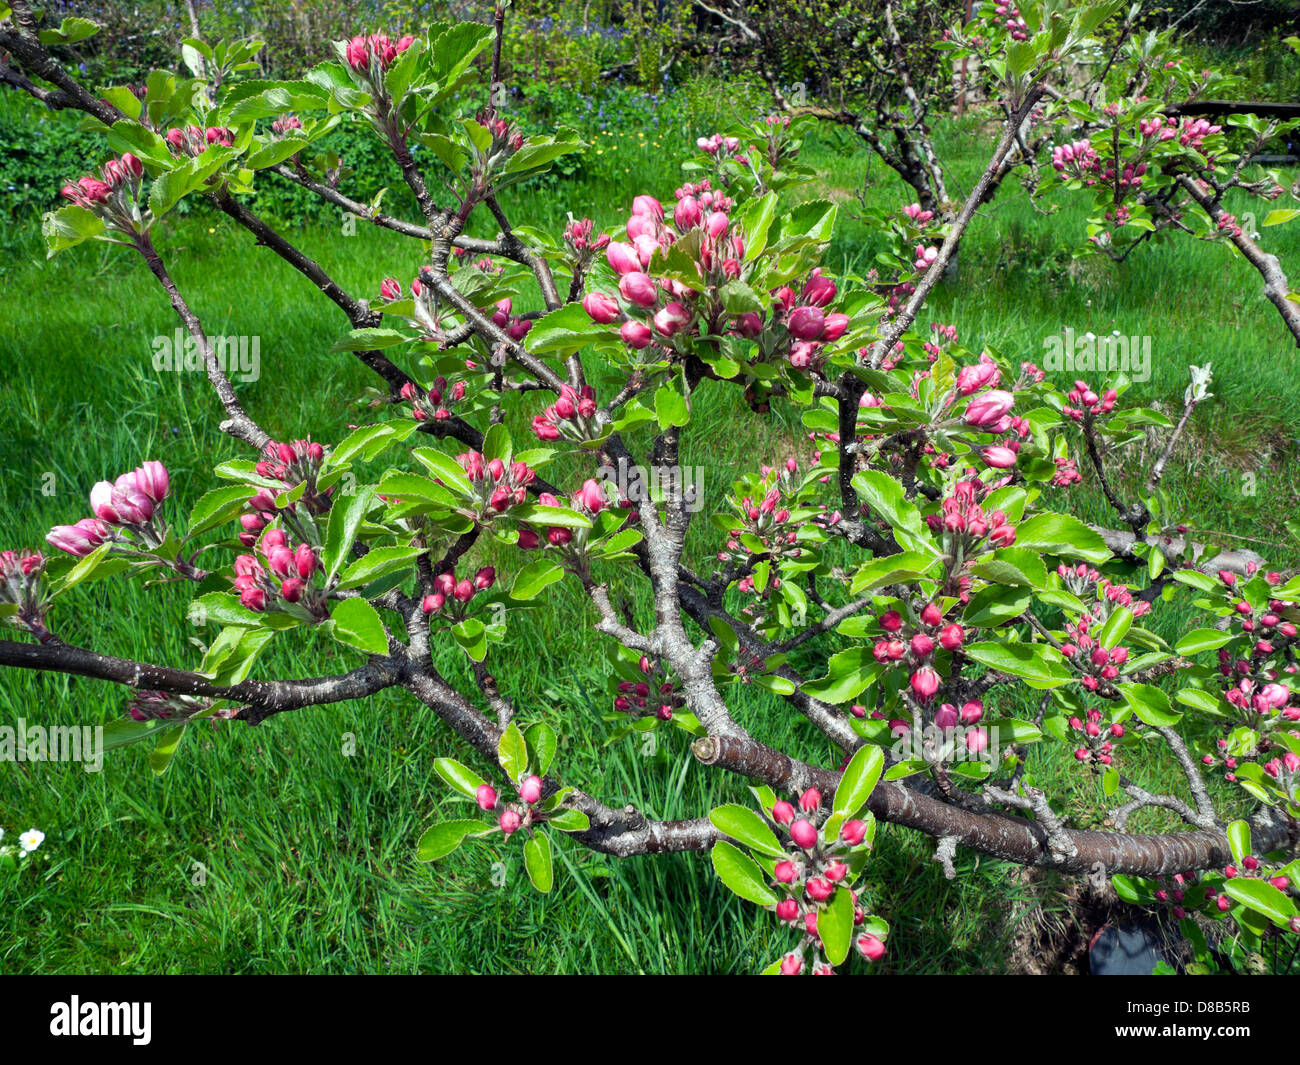 Apple Blossom on apple tree yet to fully open on 19 May 2013 in late onset spring Carmarthenshire Wales UK - Stock Image